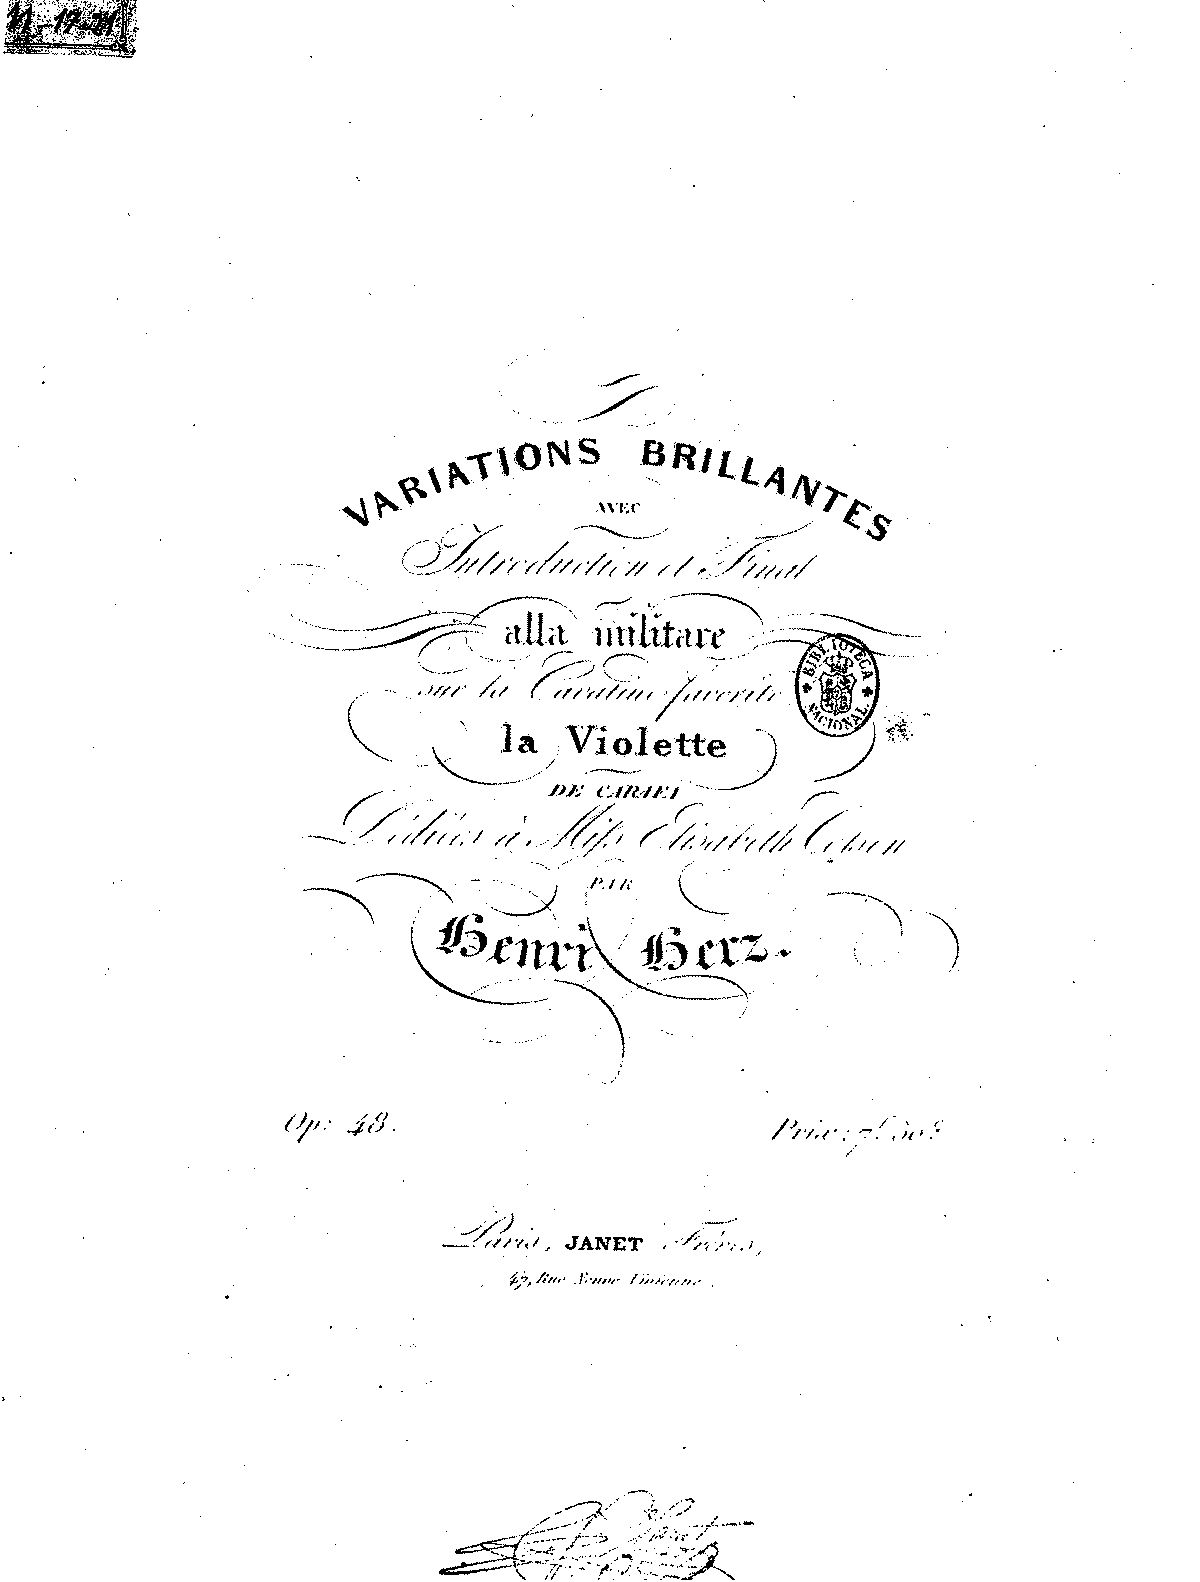 PMLP31102-HHerz Variations brillantes avec introduction et finale alla militare sur la cavatine favorite La violette, Op.48.pdf